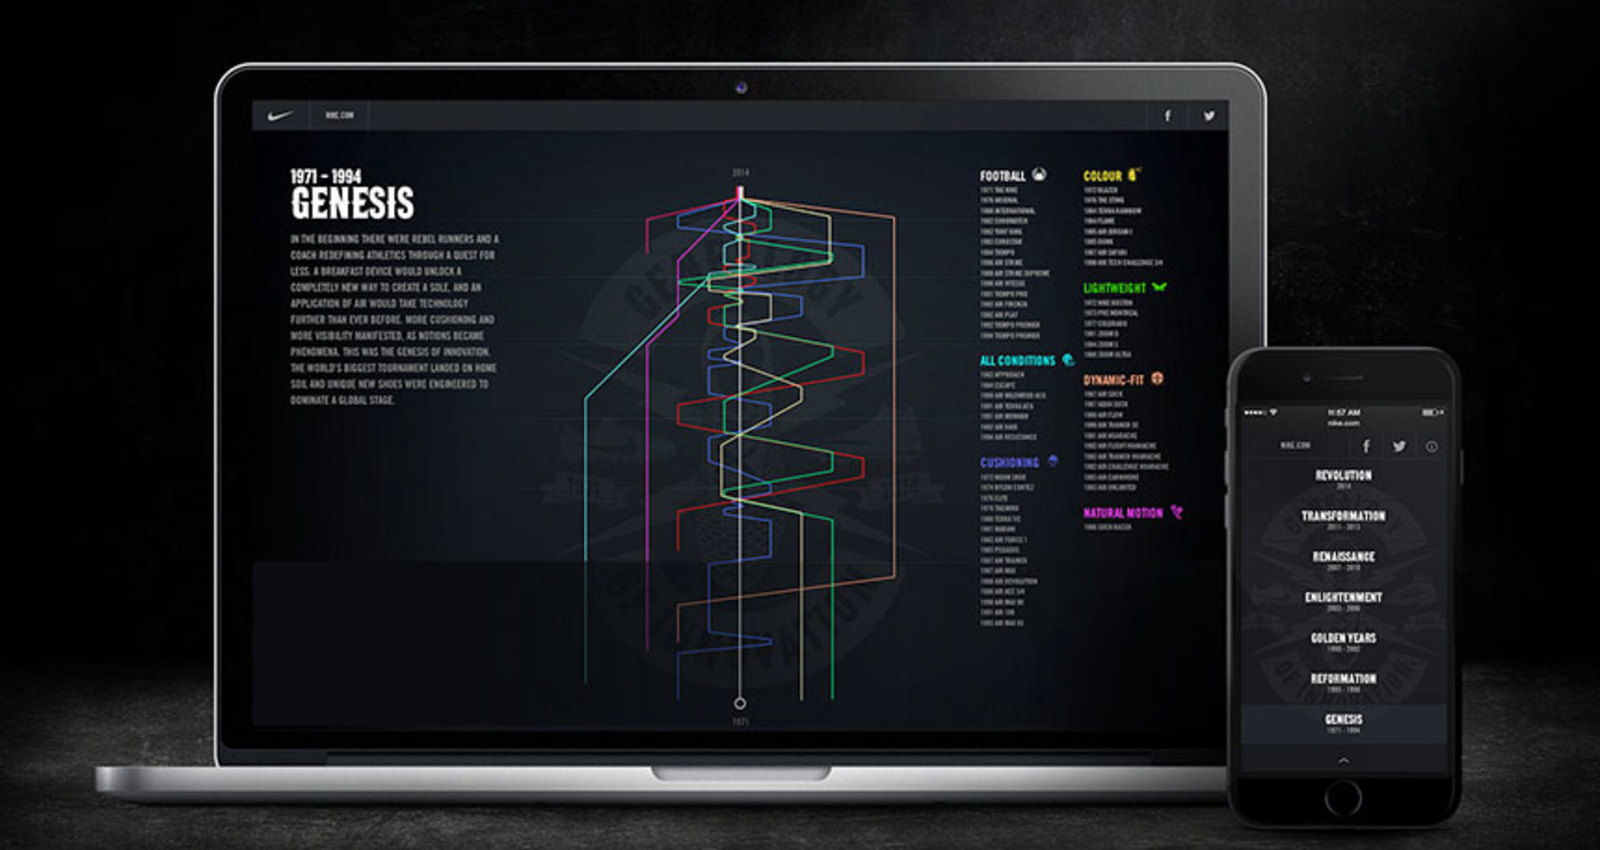 Nike Genealogy of Innovation